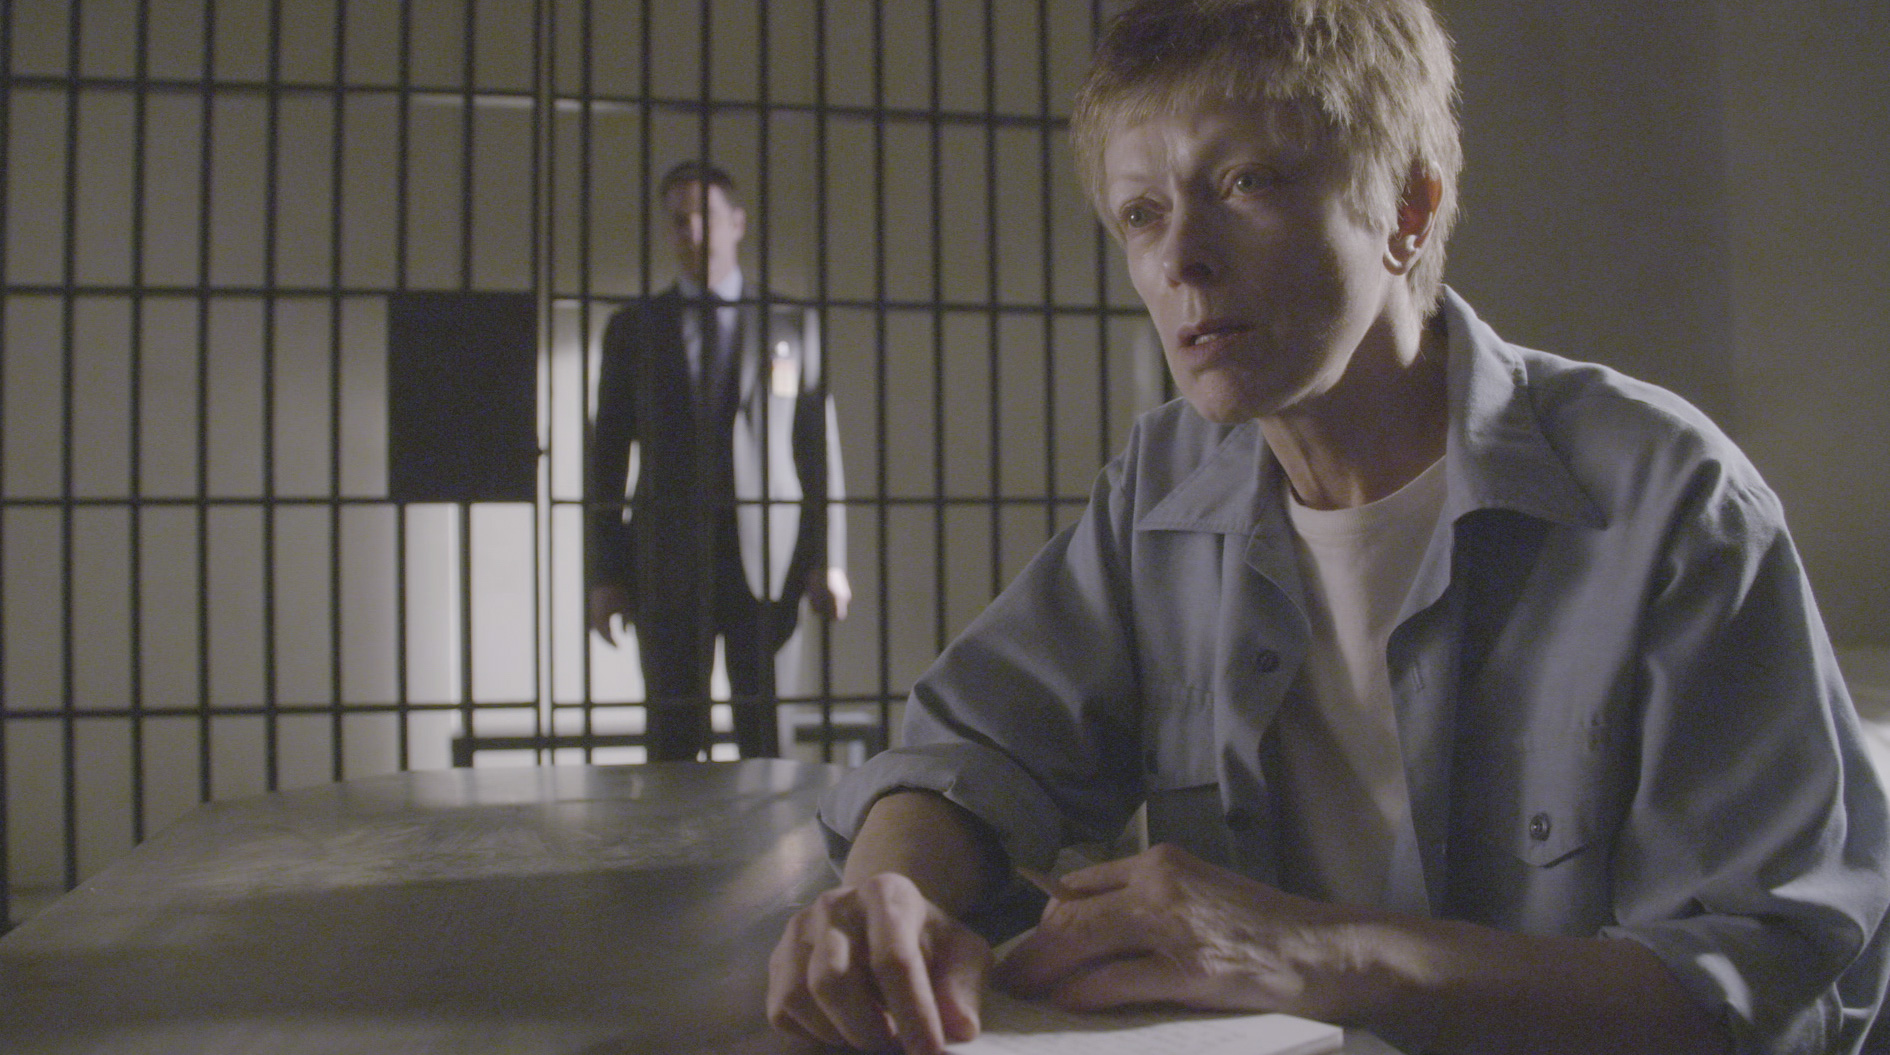 The BAU seeks information from a notorious inmate.